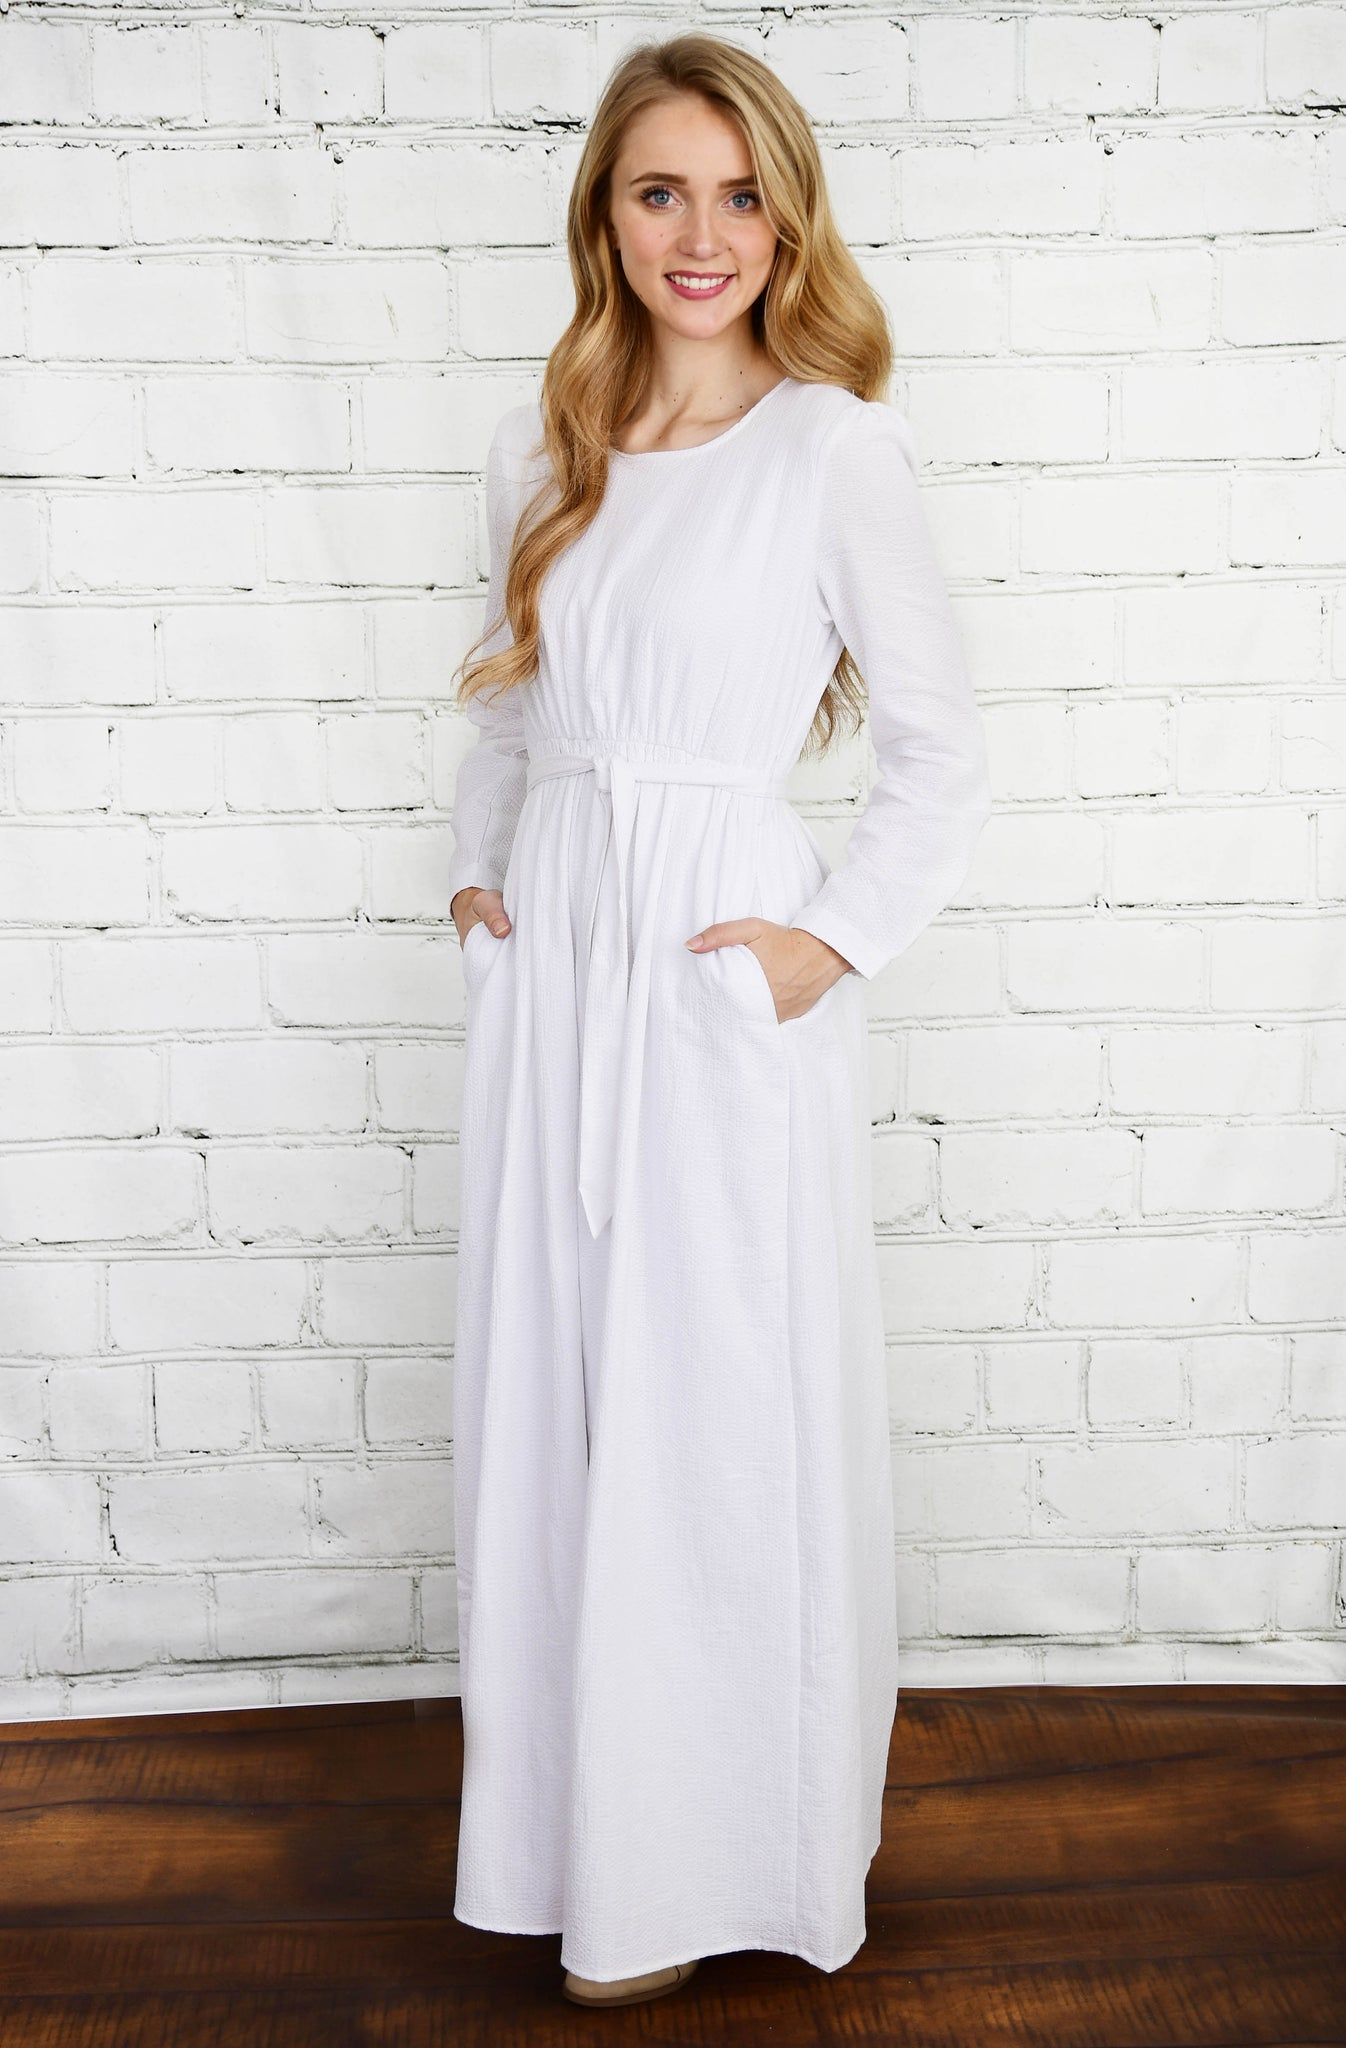 The Liv Textured White Temple Dress